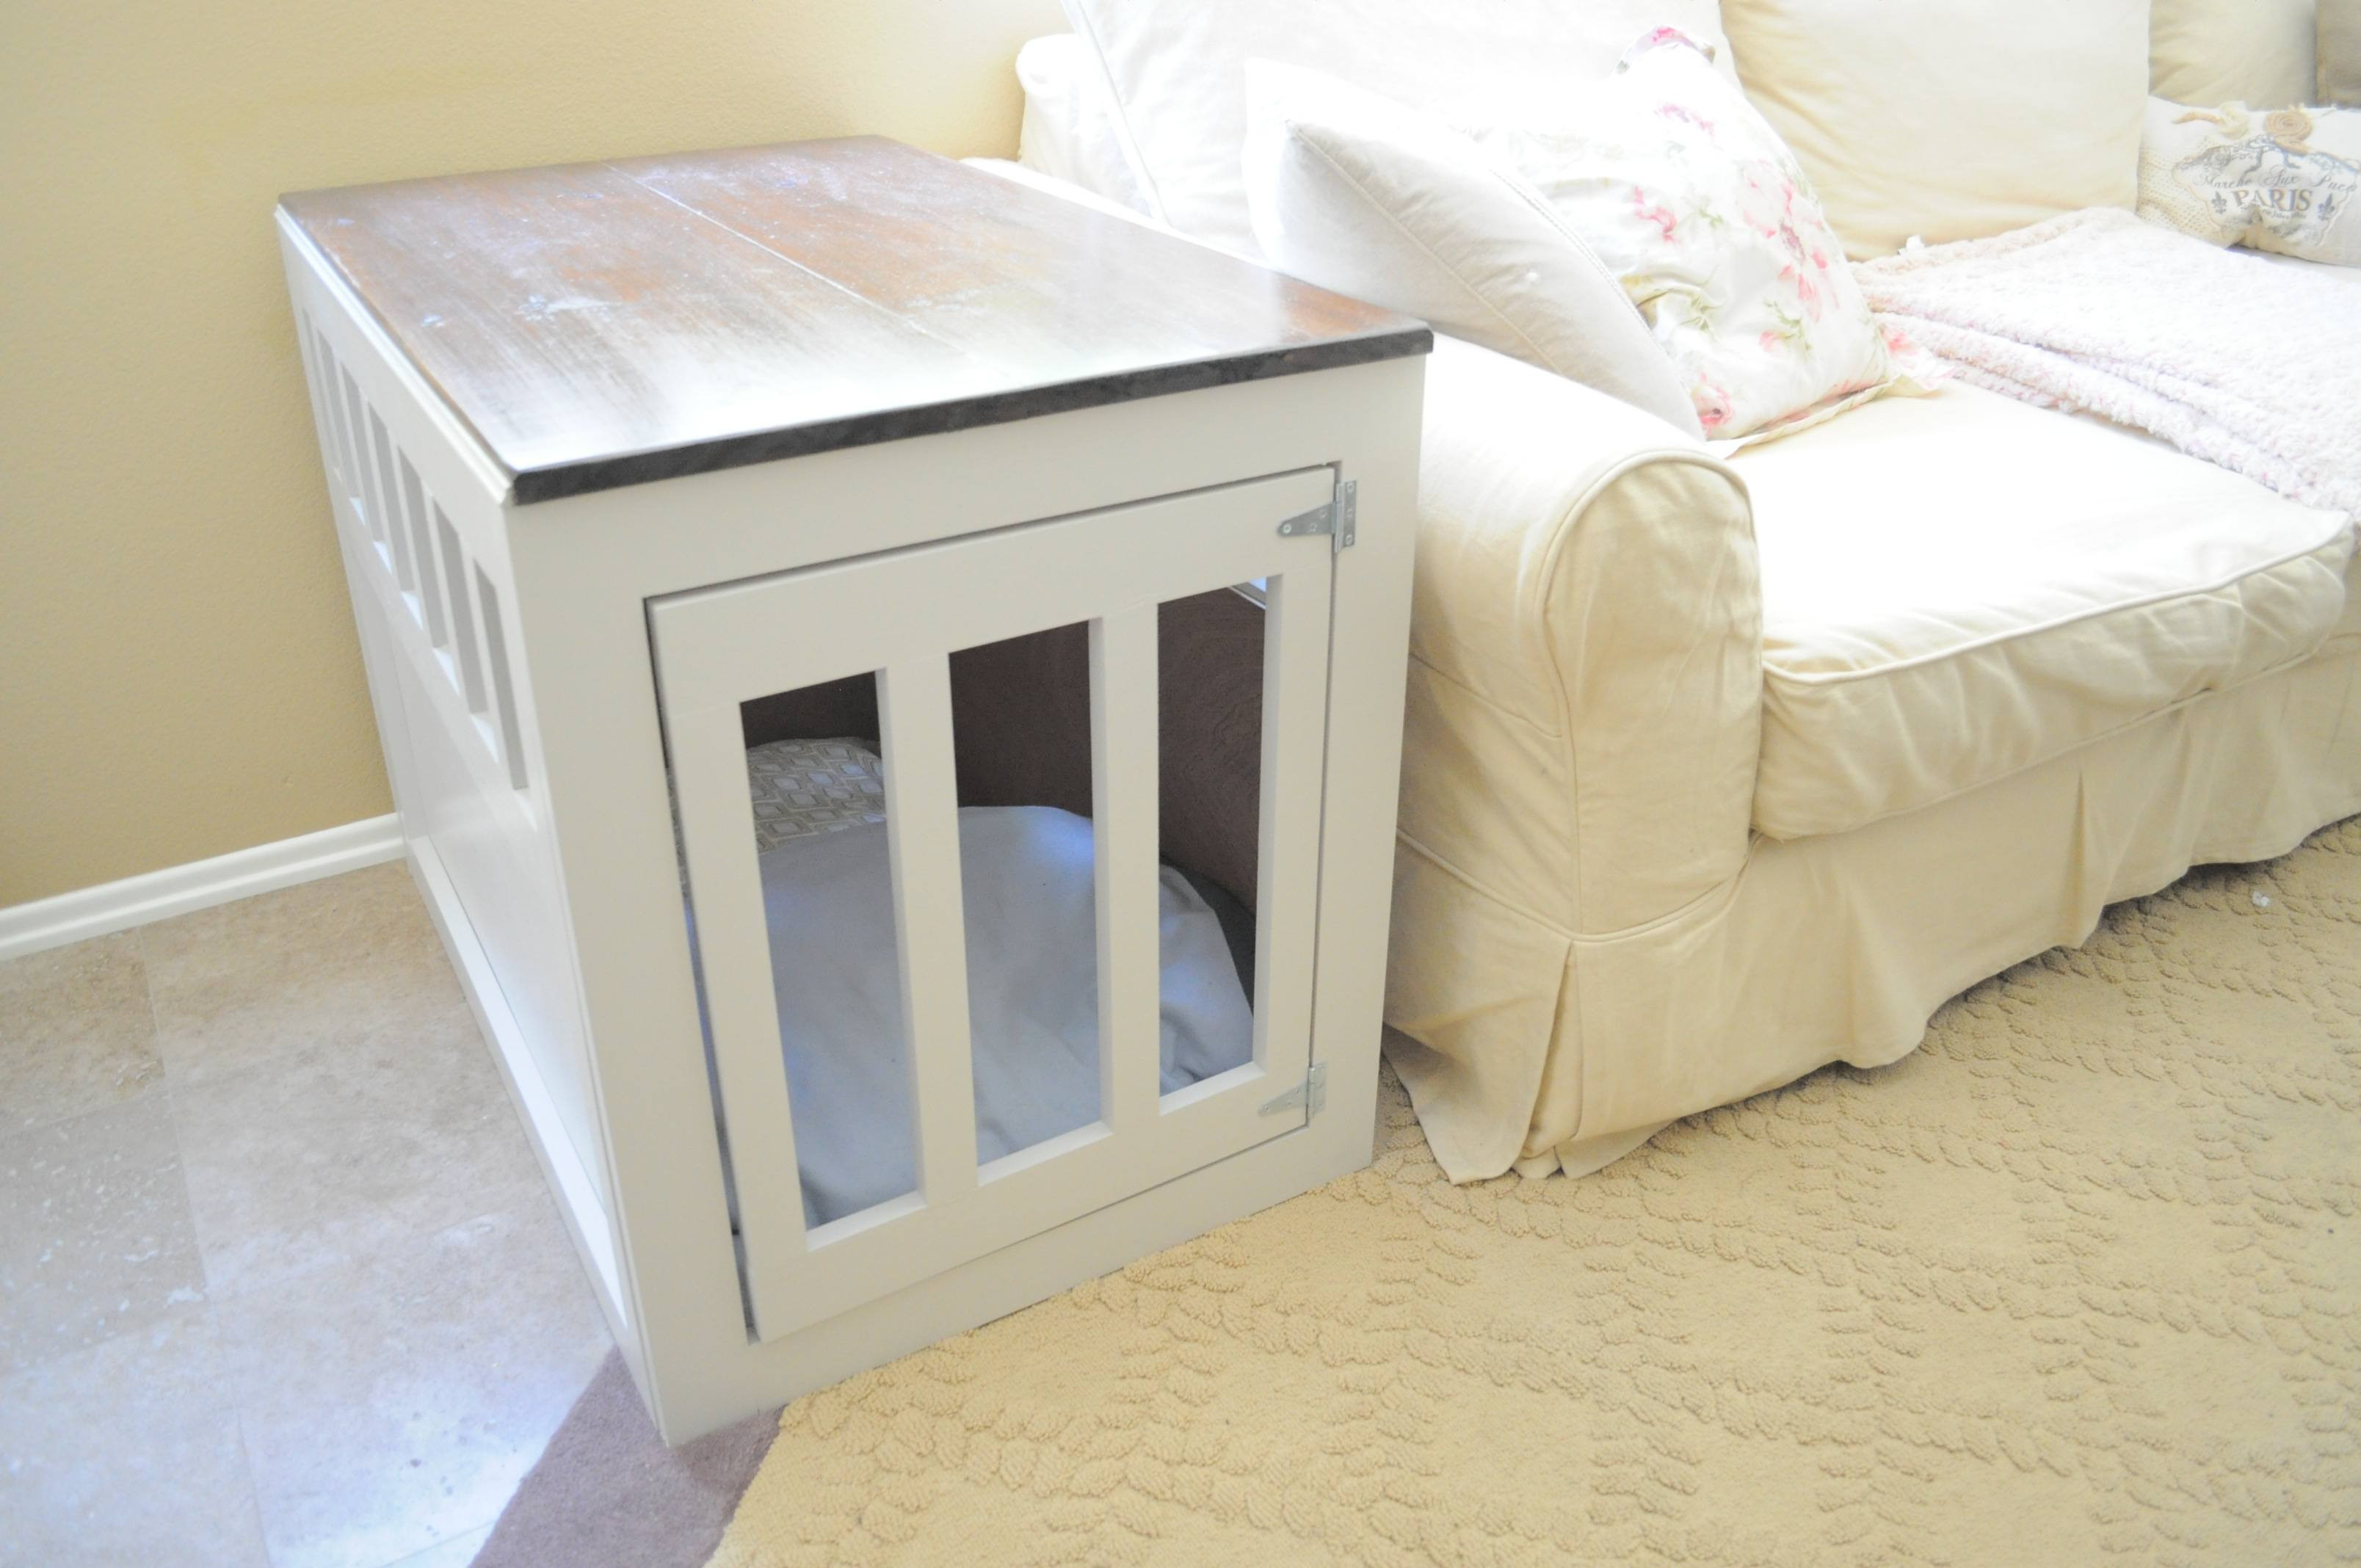 Best ideas about Dog Crate Furniture DIY . Save or Pin Every Dog Owner Should Learn These 20 DIY Pet Projects Now.